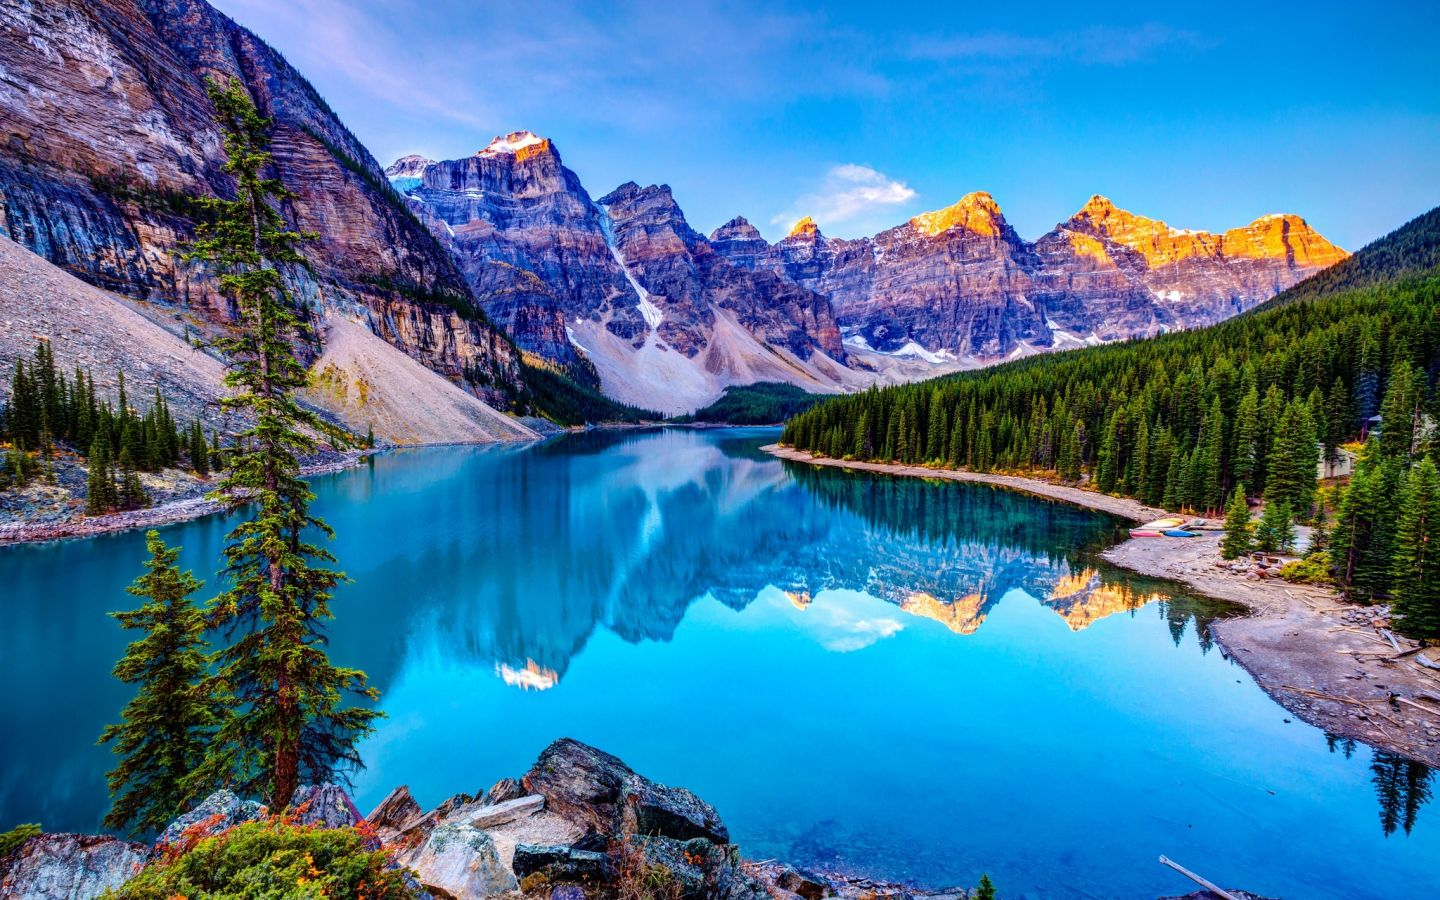 30 Nature Wallpapers High Resolution Free Download Landscape Pictures Landscape Wallpaper Nature Wallpaper